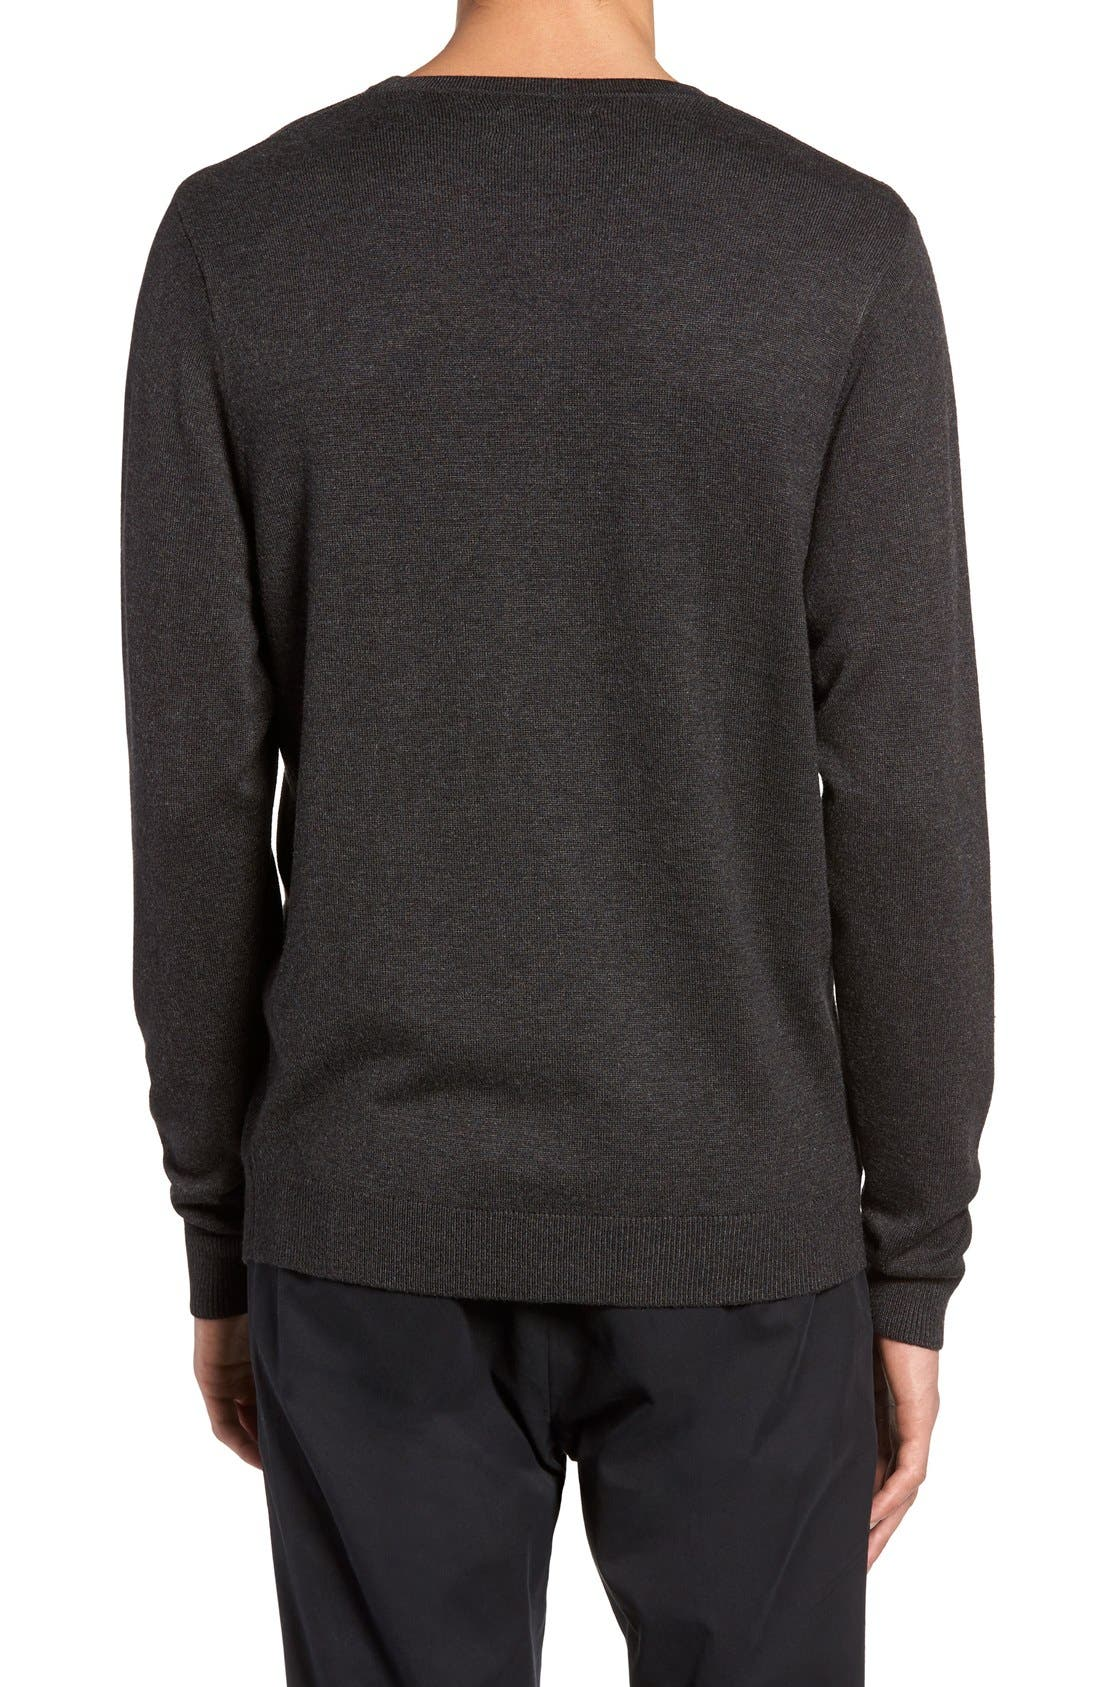 Honeycomb Stitch Crewneck Sweater,                             Alternate thumbnail 2, color,                             Grey Dark Charcoal Heather